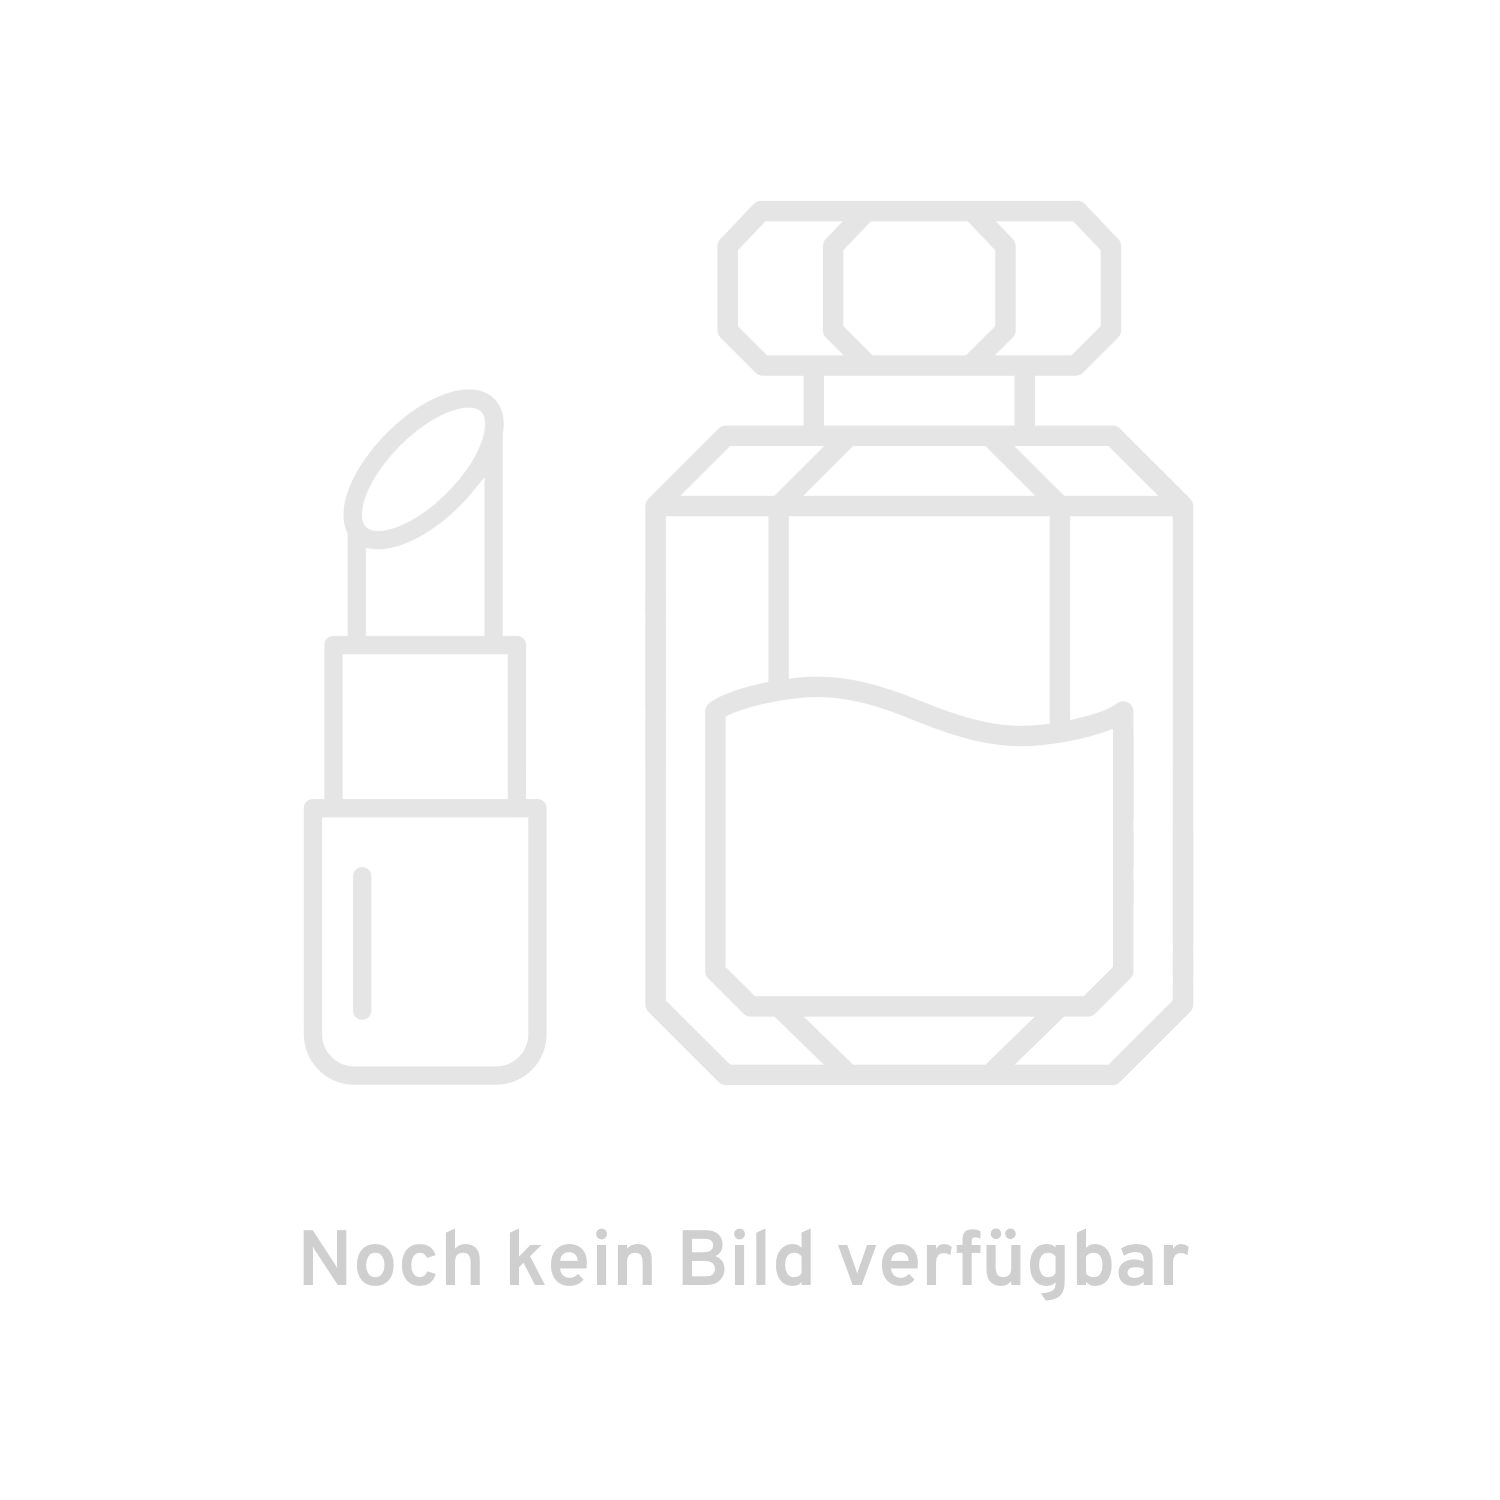 rhubarb rose hand wash von molton brown bestellen bei ludwig beck beauty online. Black Bedroom Furniture Sets. Home Design Ideas